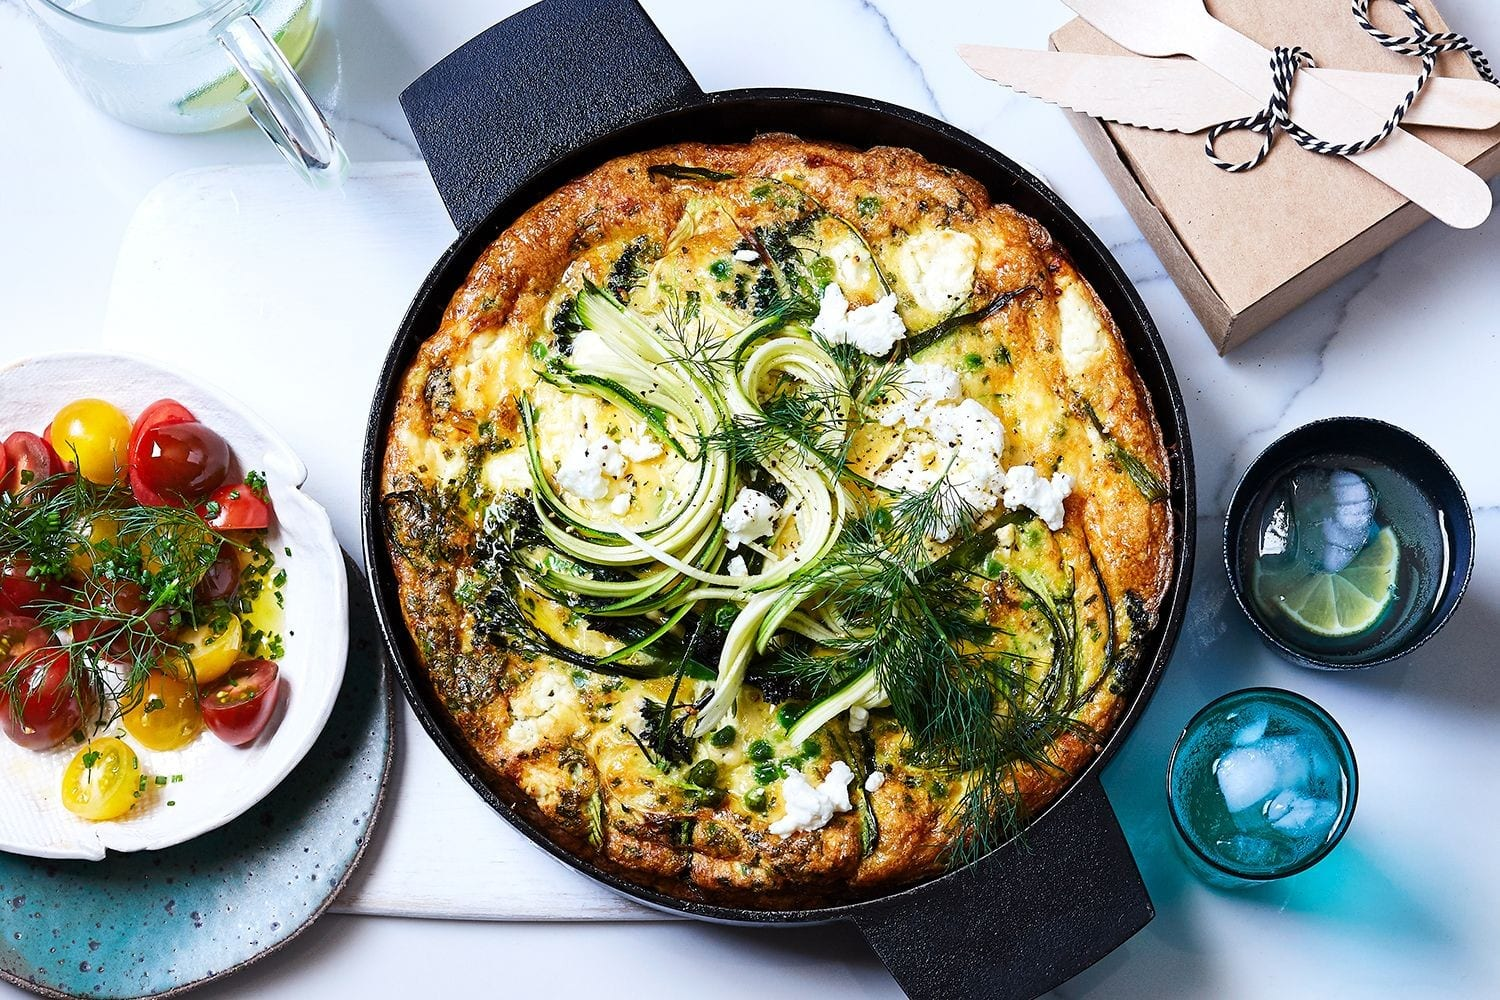 Goat's cheese and vegetable frittata with tomato salad keto recipe